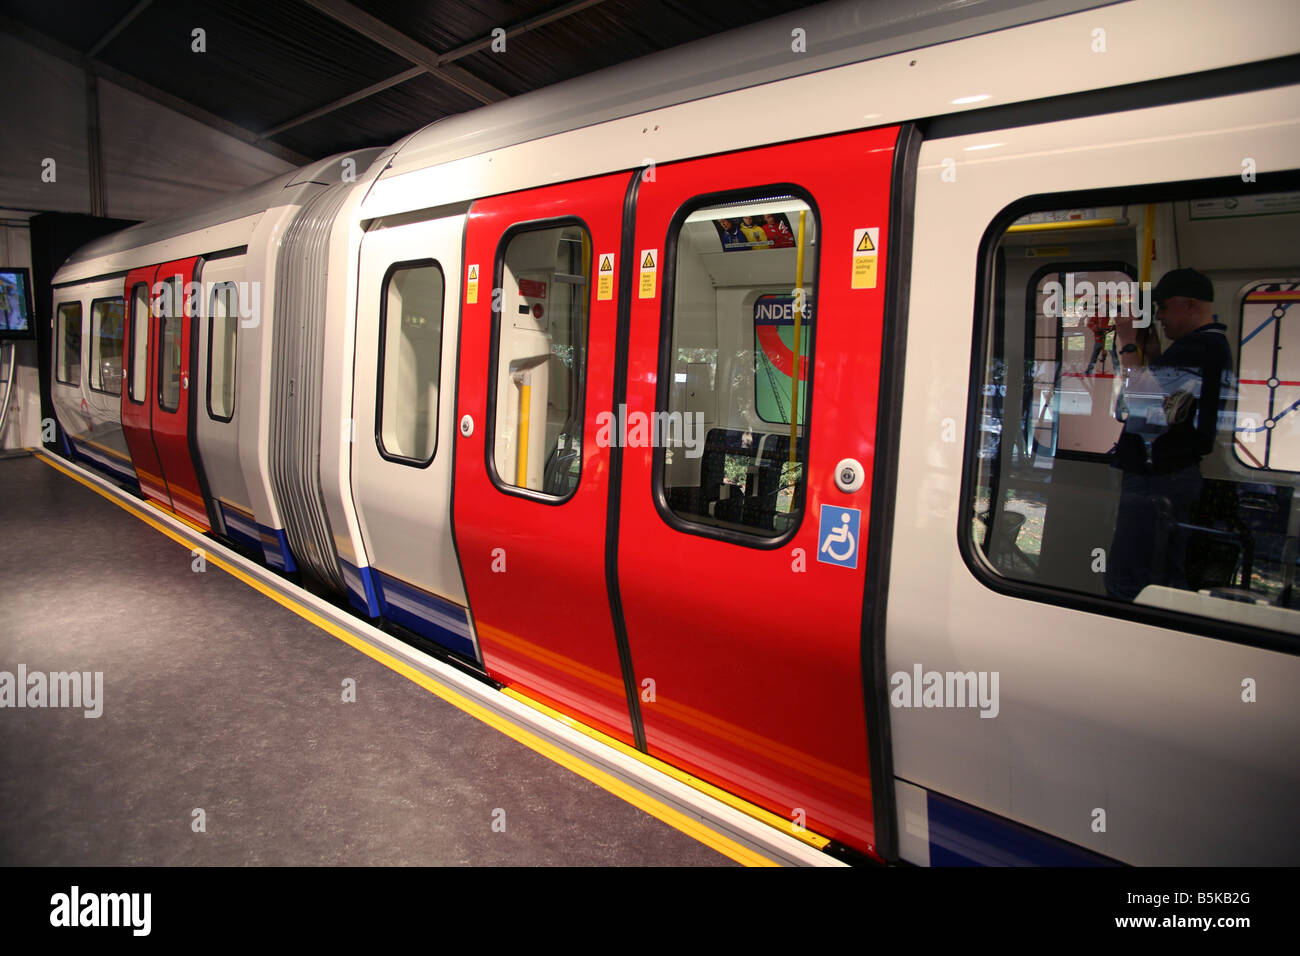 New London Tube trains from 2010 will have walk through bendy sections like buses and aircon - Stock Image